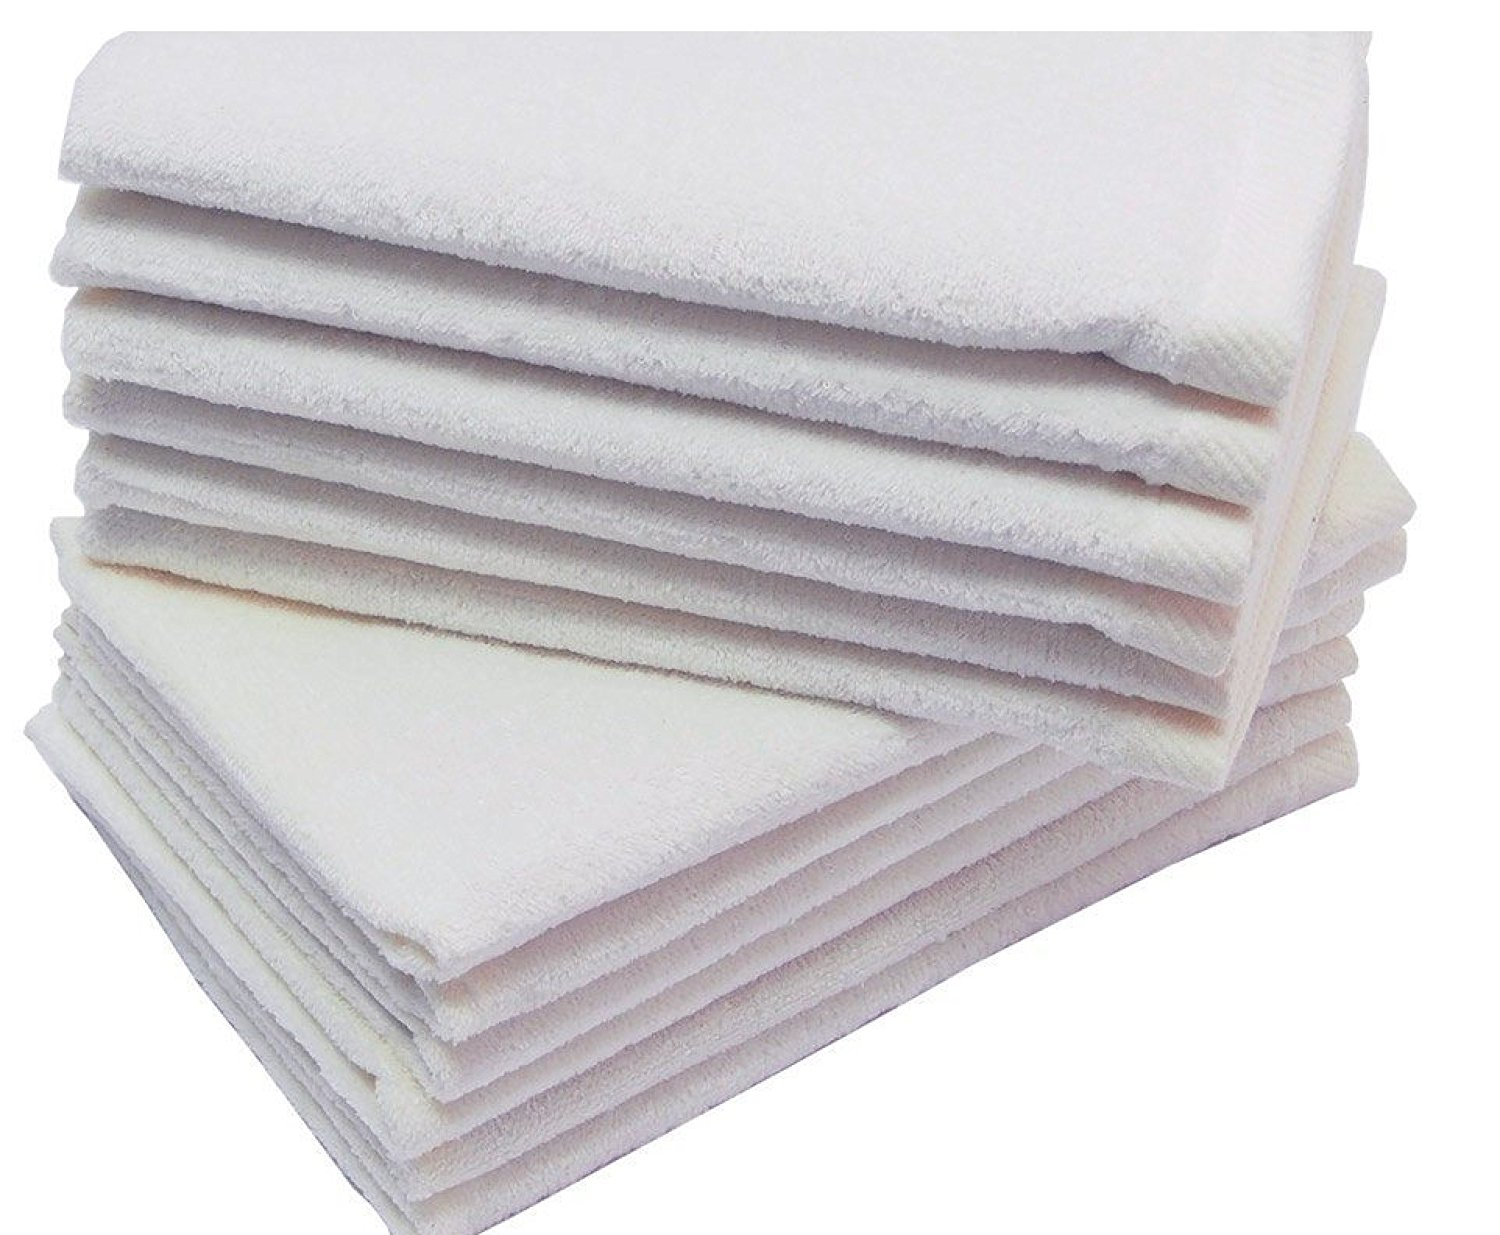 Big Deal! Cotton Terry Towel, WHITE Color,Low Cost Bulk Towels at Wholesale Prices! (24 Count Pack) (24, WHITE)